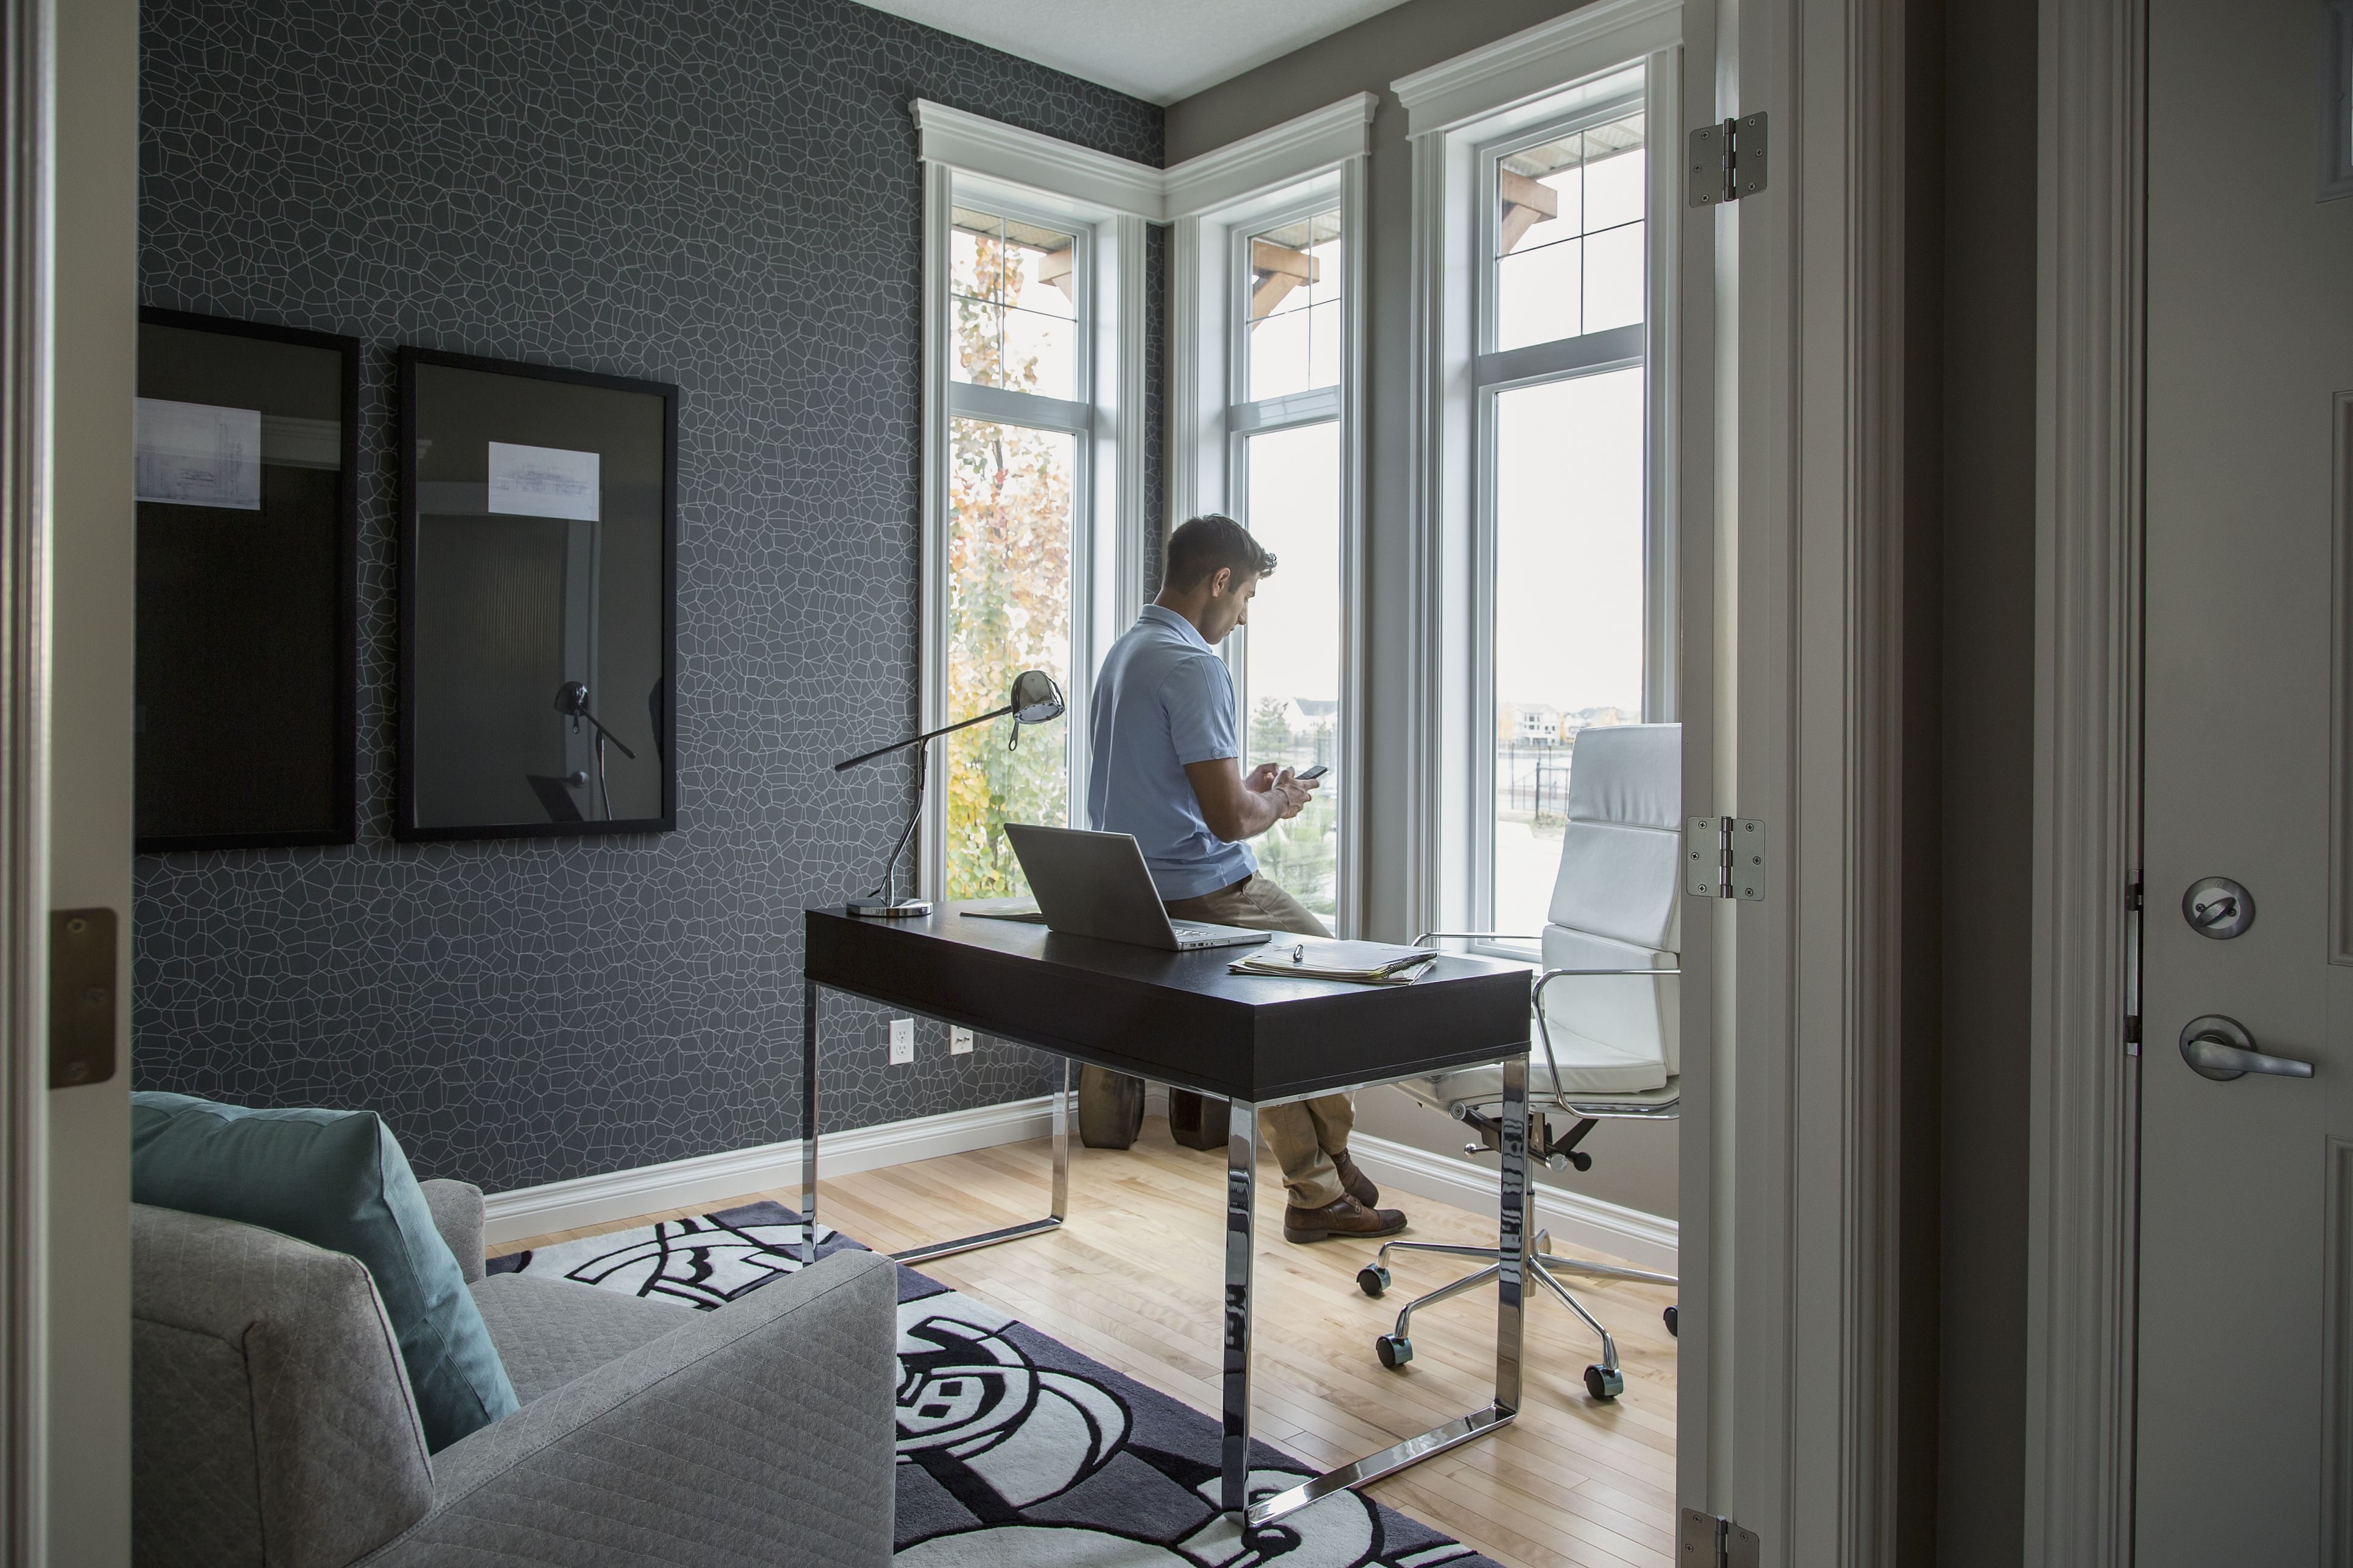 How to Make Your Home Business Client-Friendly